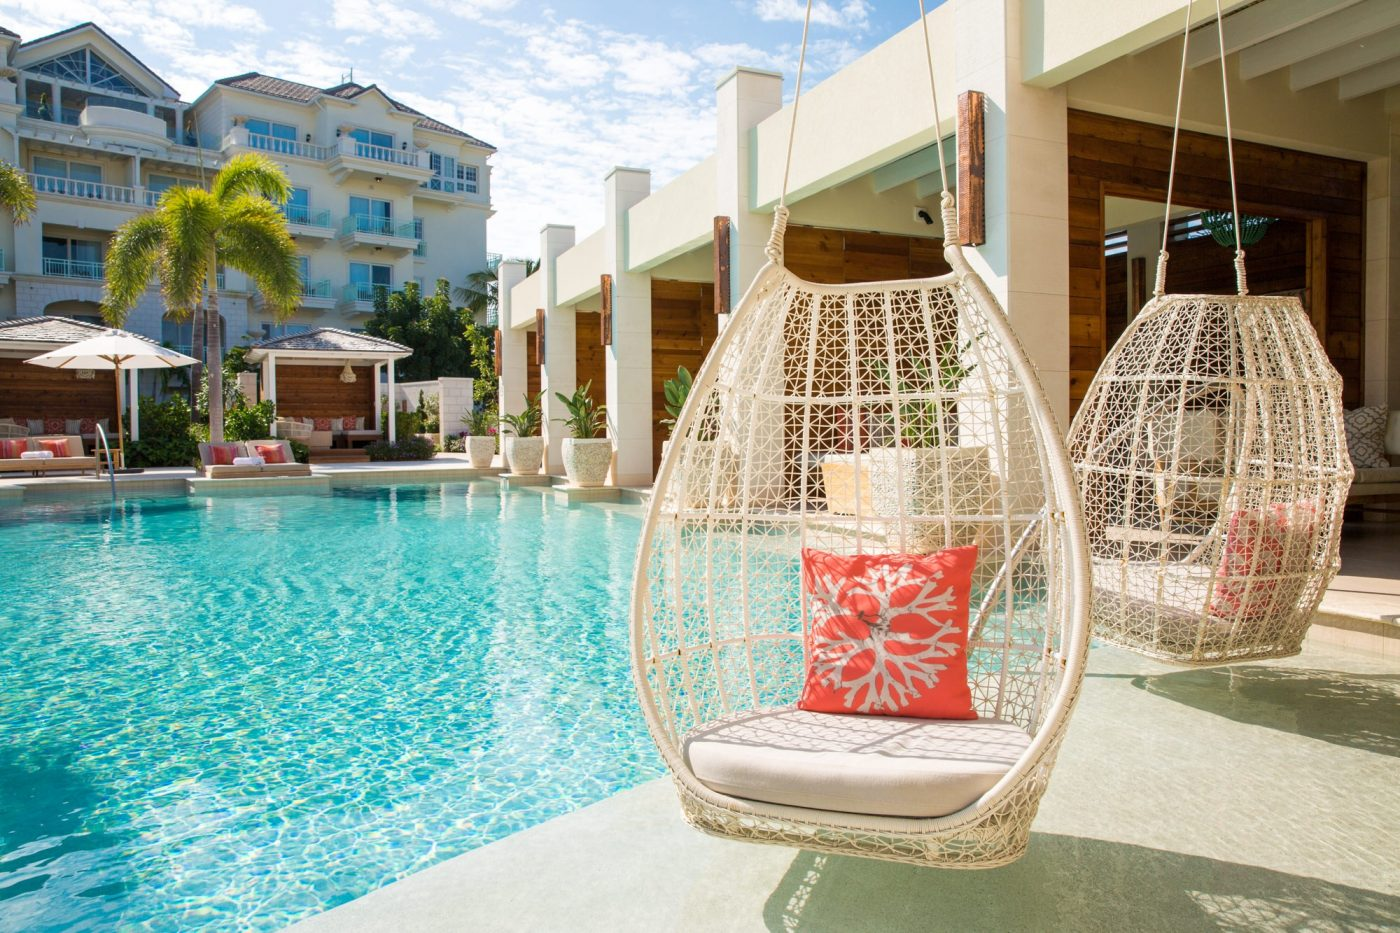 TURKS & CAICOS A beautiful by nature secret that is worth keeping